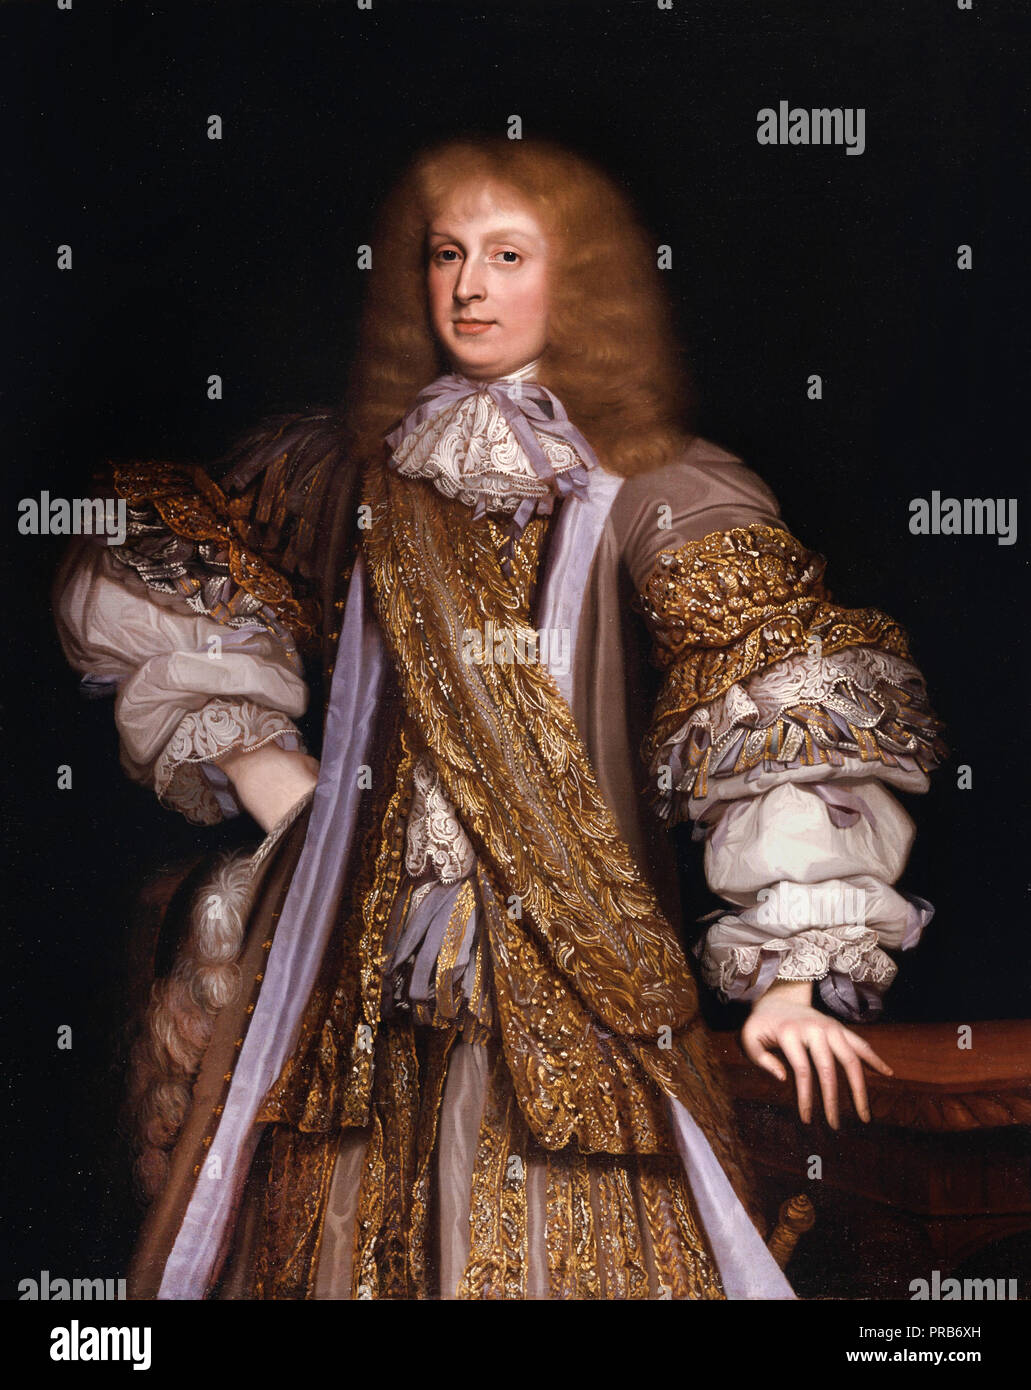 John Michael Wright, Sir John Corbet of Adderley, Circa 1676 Oil on canvas, Yale Center for British Art, New Haven, USA. - Stock Image